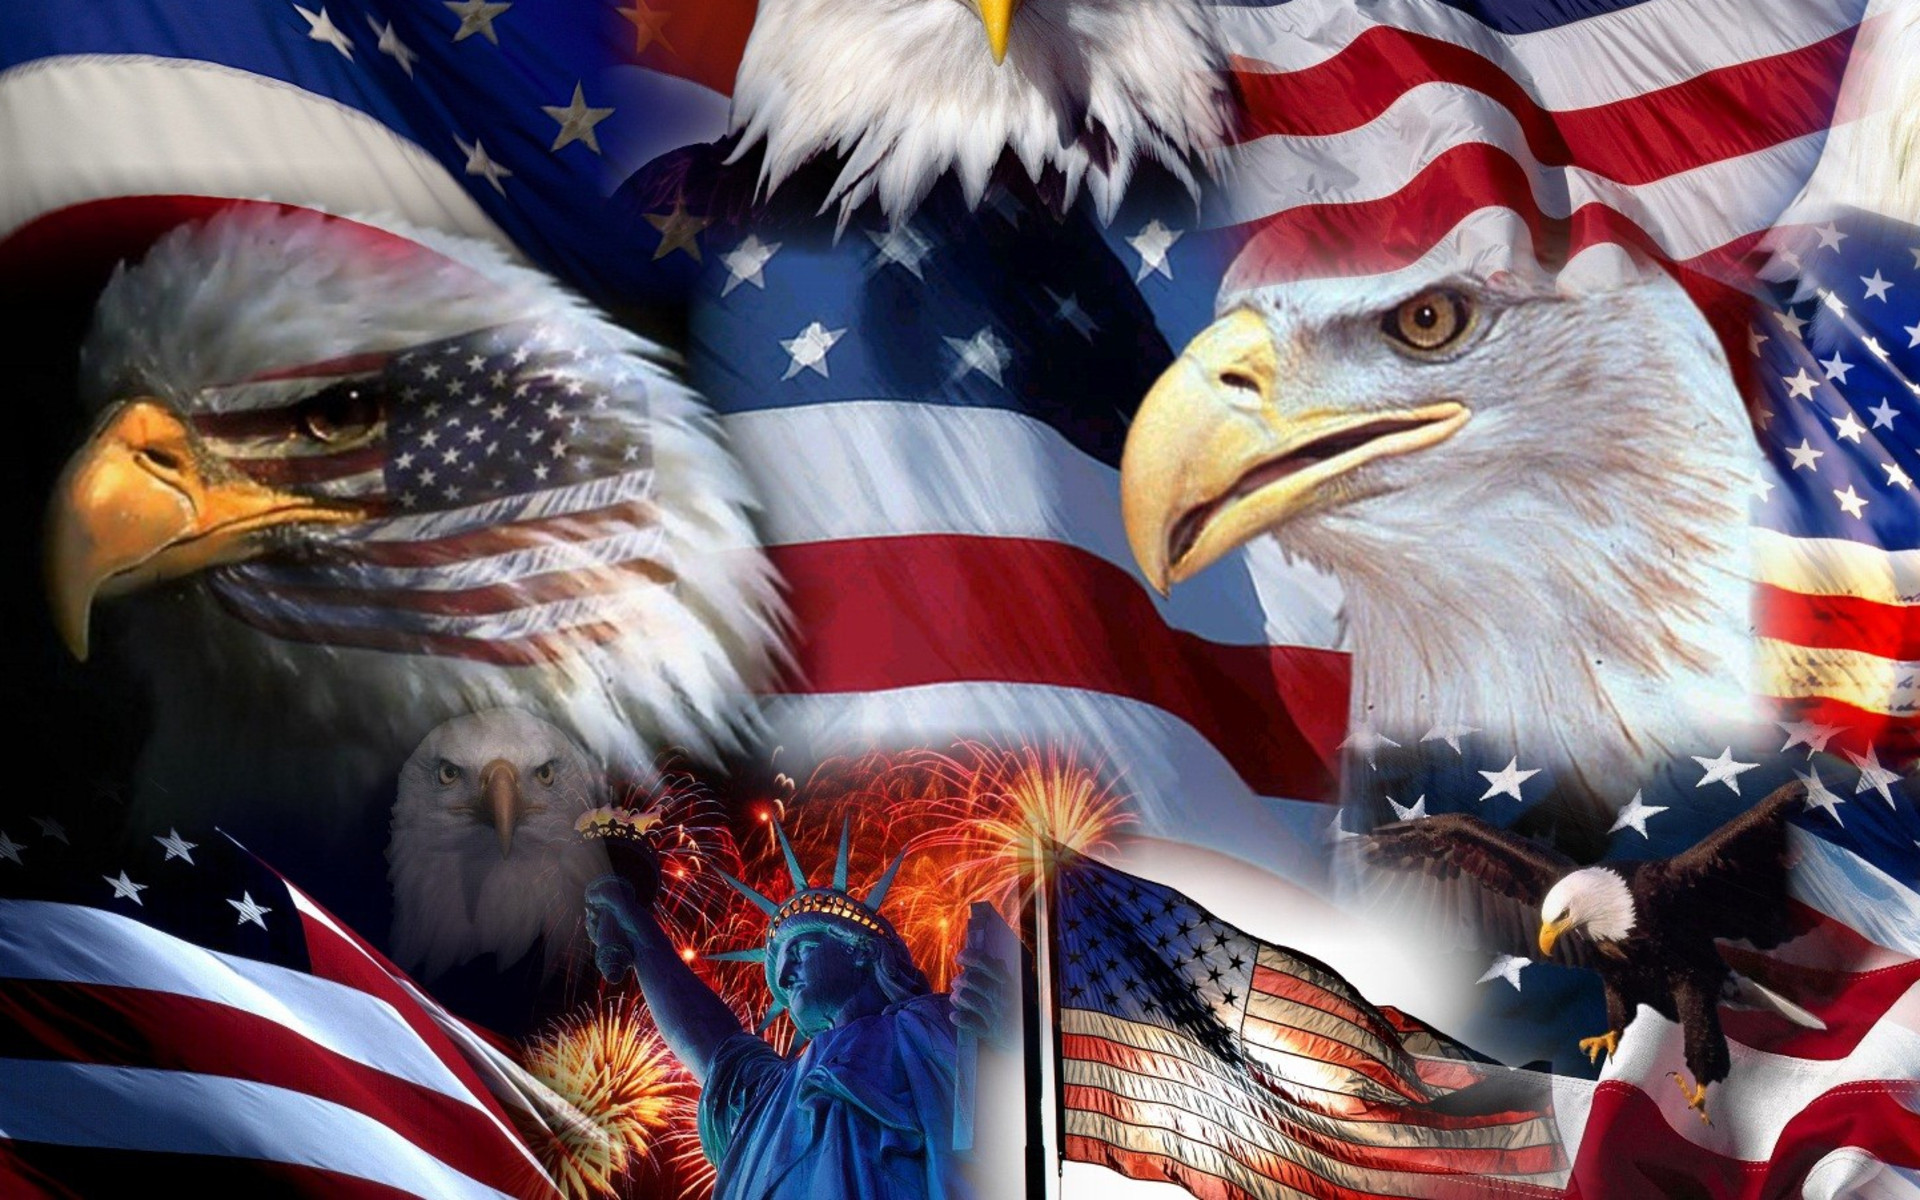 American flag with an American eagle. Credit to thewallpaper.co